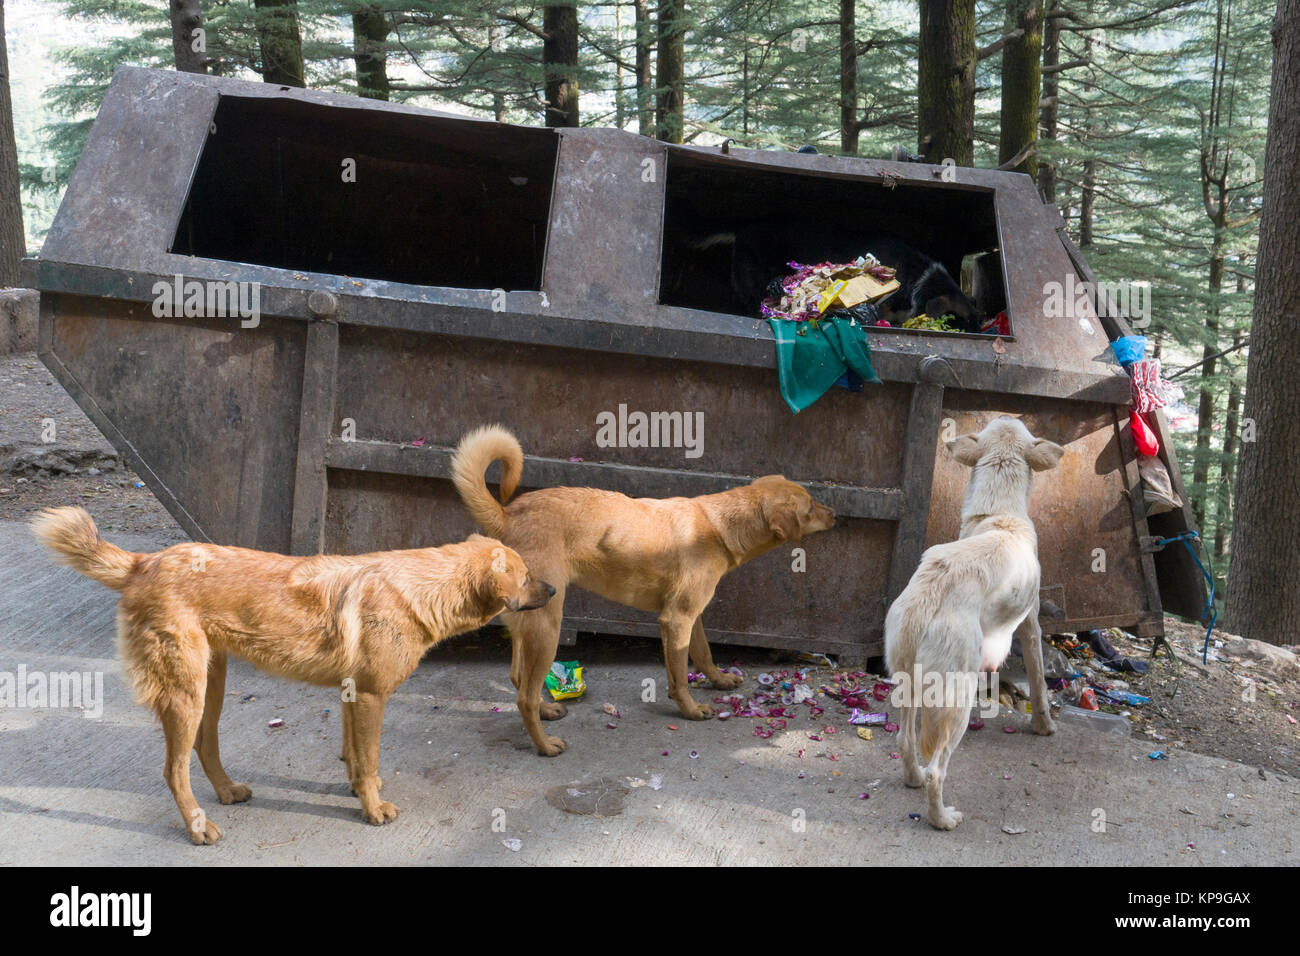 Street dogs scavenging food from dumpster in Mcleod Ganj, India - Stock Image